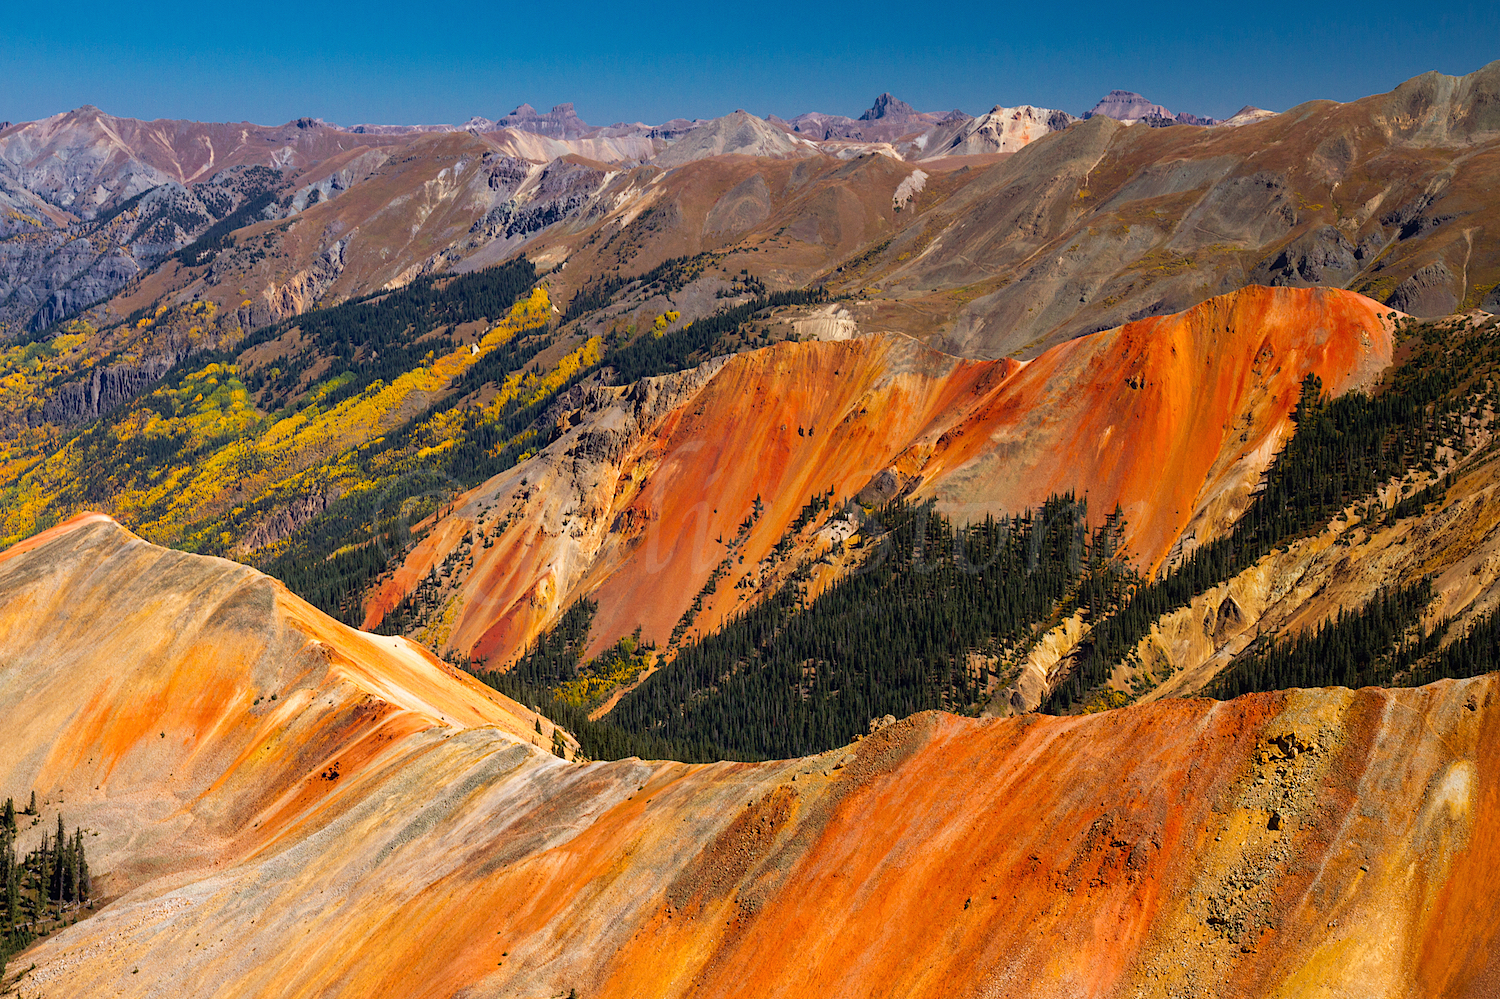 Red Mountain #3, Image #1016